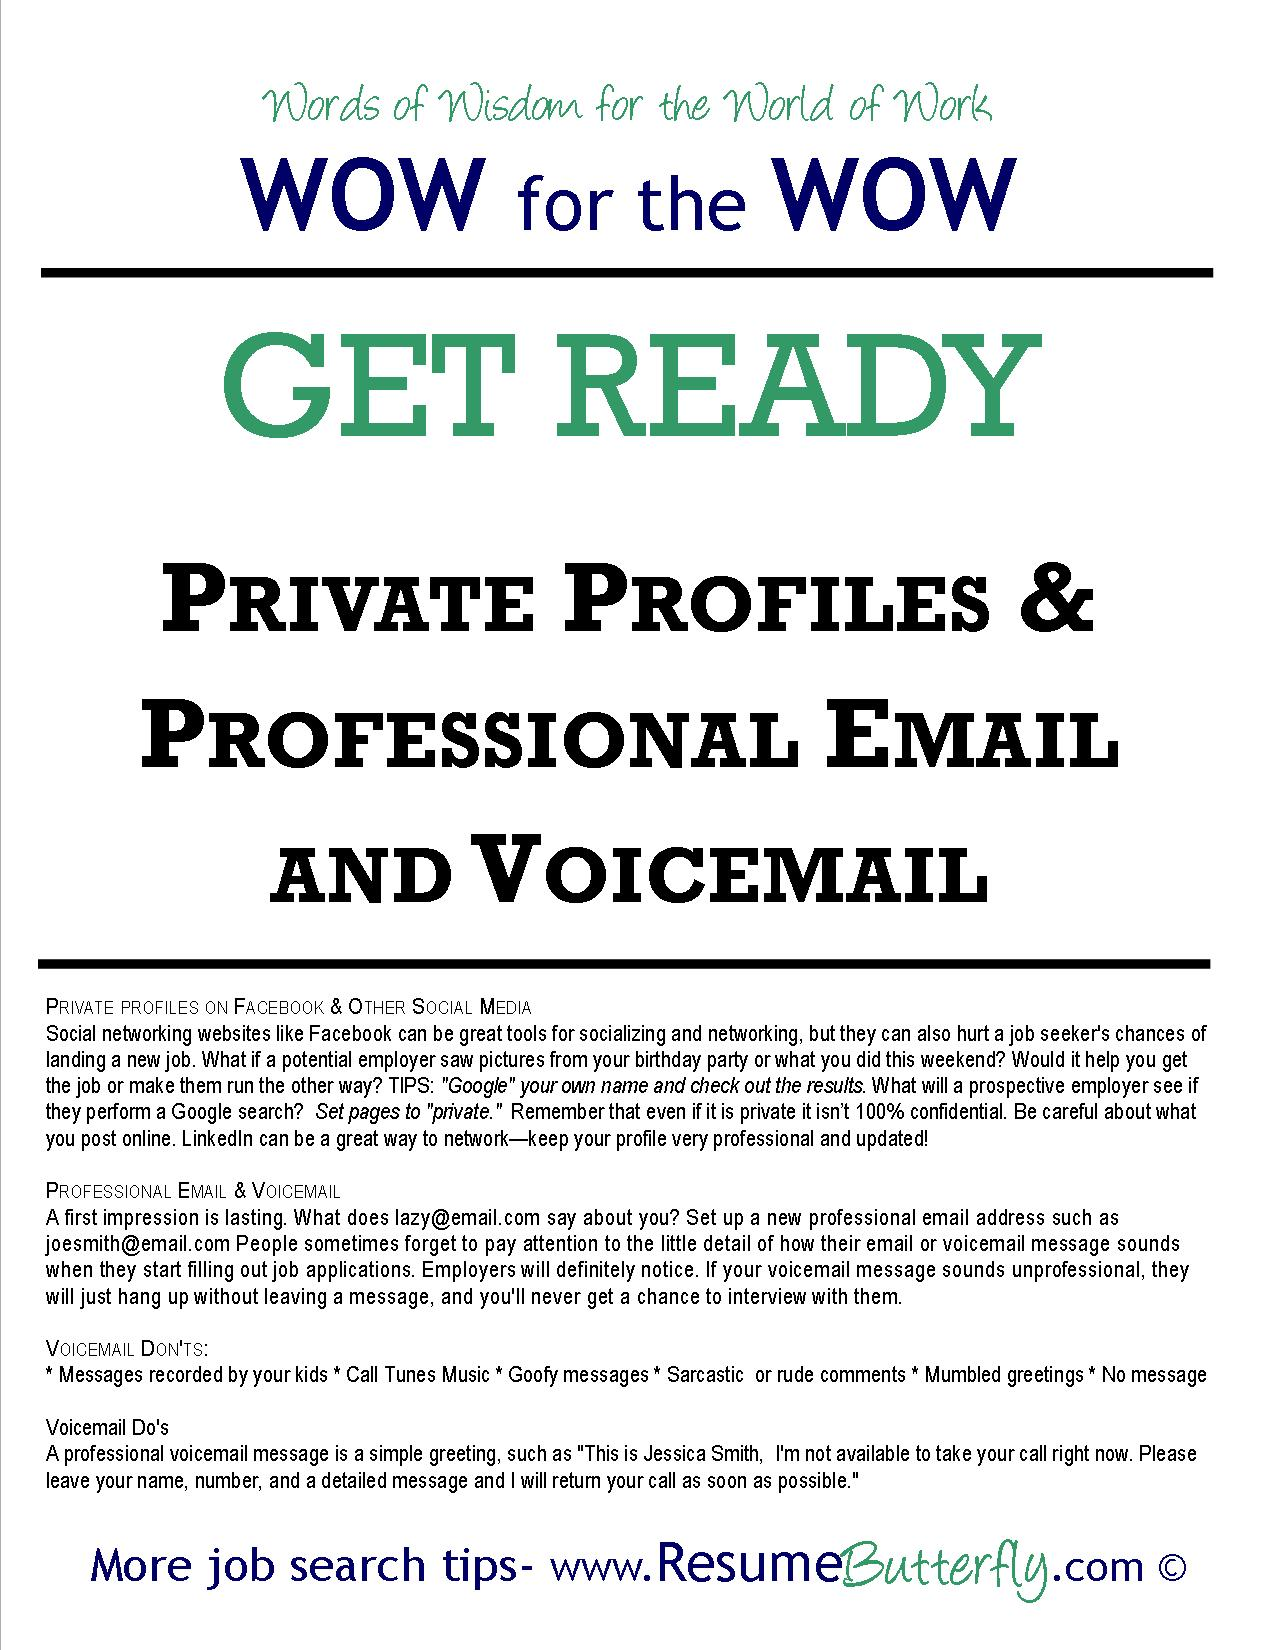 Private Profiles Professional Email And Voicemail Resume Butterfly